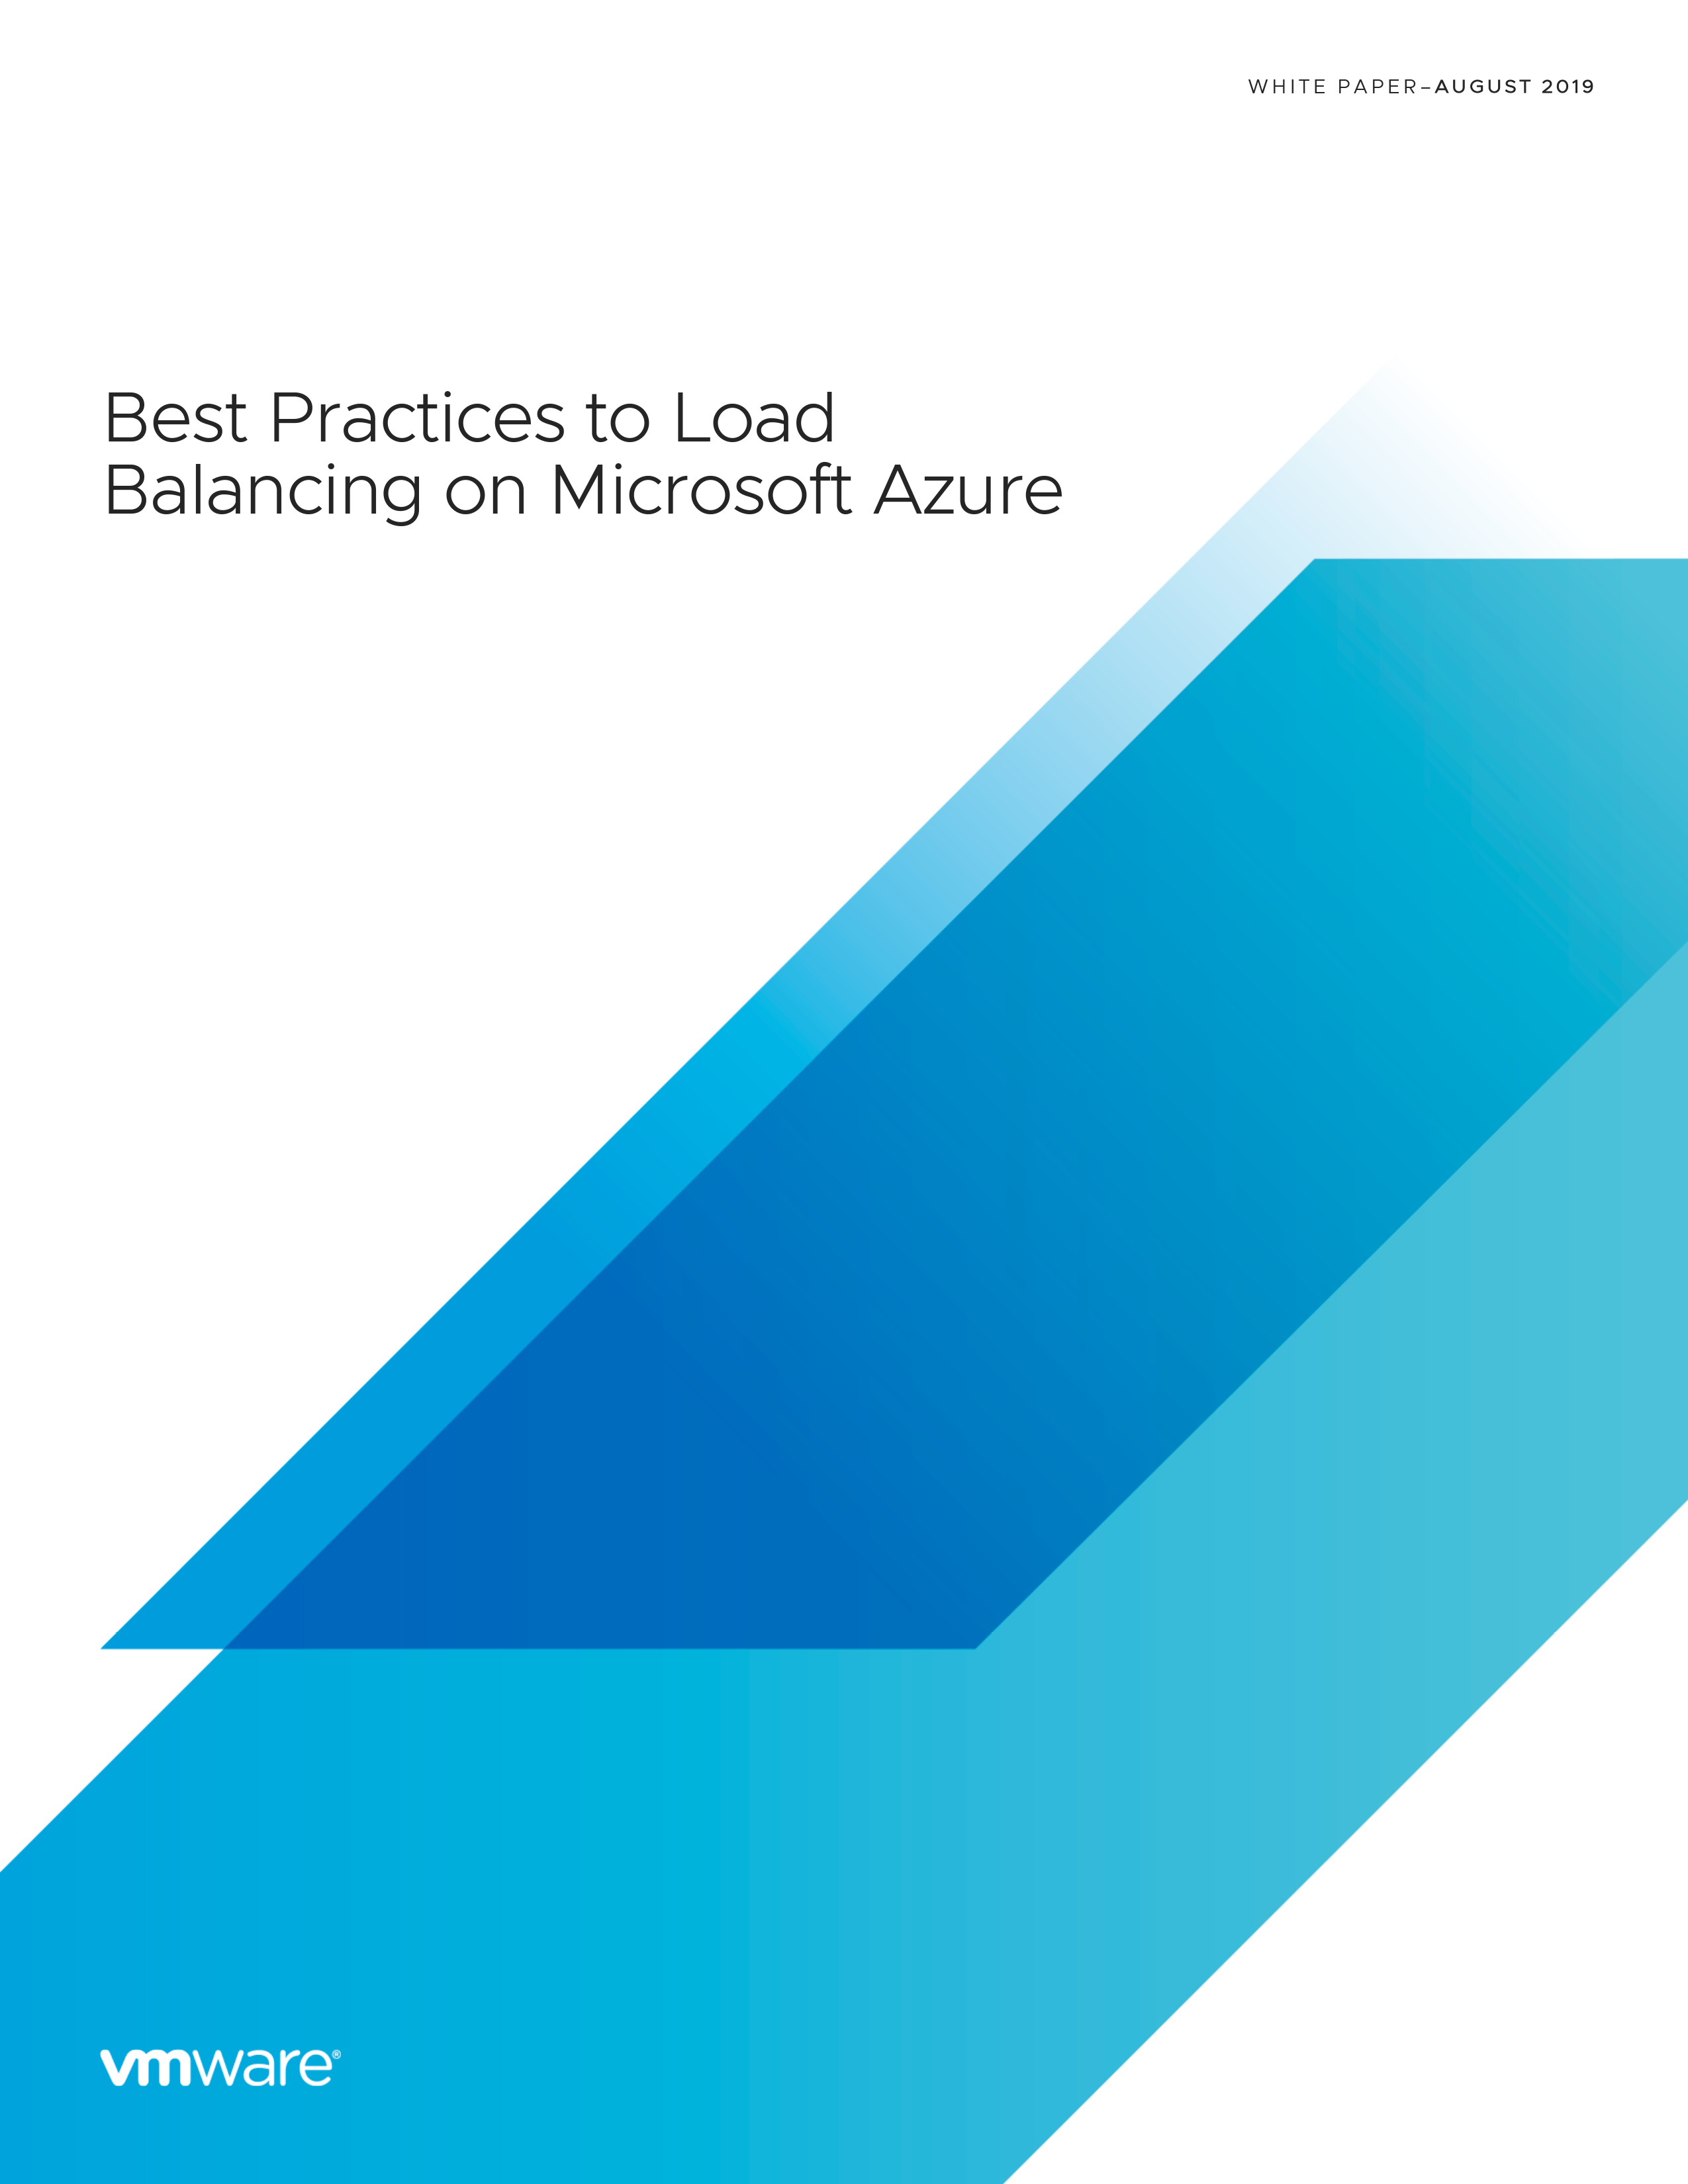 flat-load-balancing-microsoft-azure-best-practices-white-paper